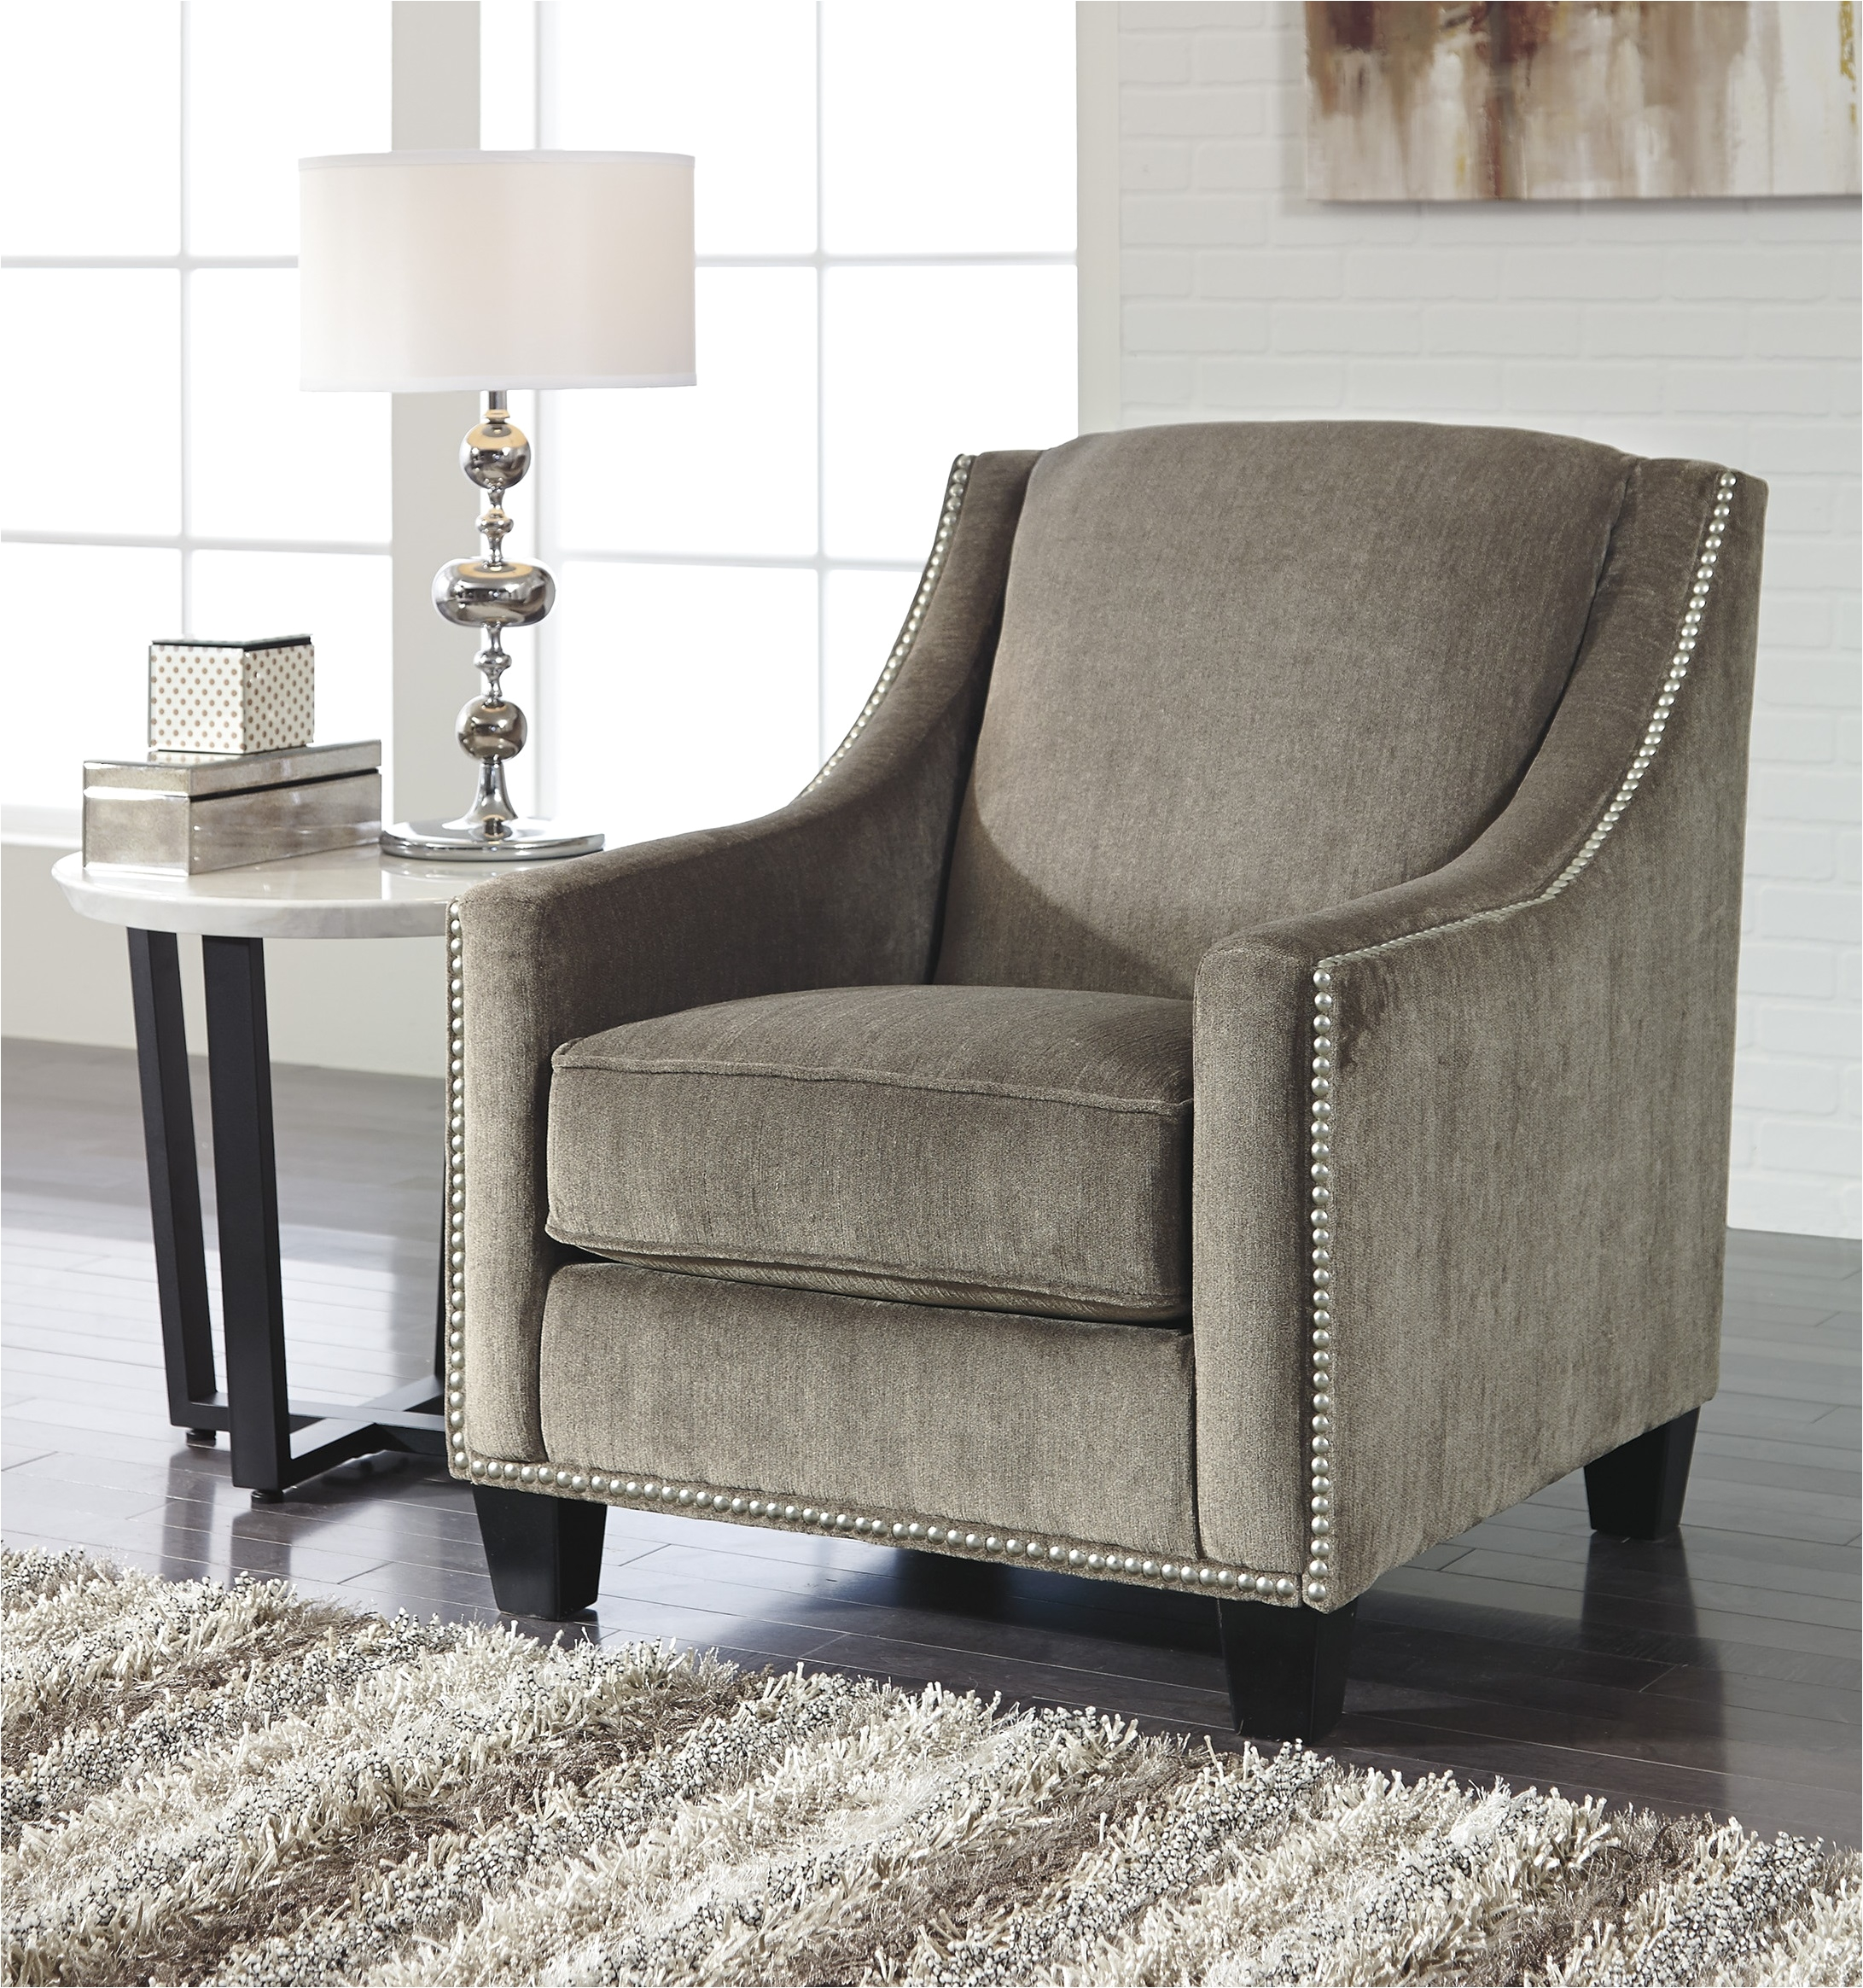 full size of chair ashley accent chairs inspirational furniture accenthairs helpformycreditomhair by striking of top innovative